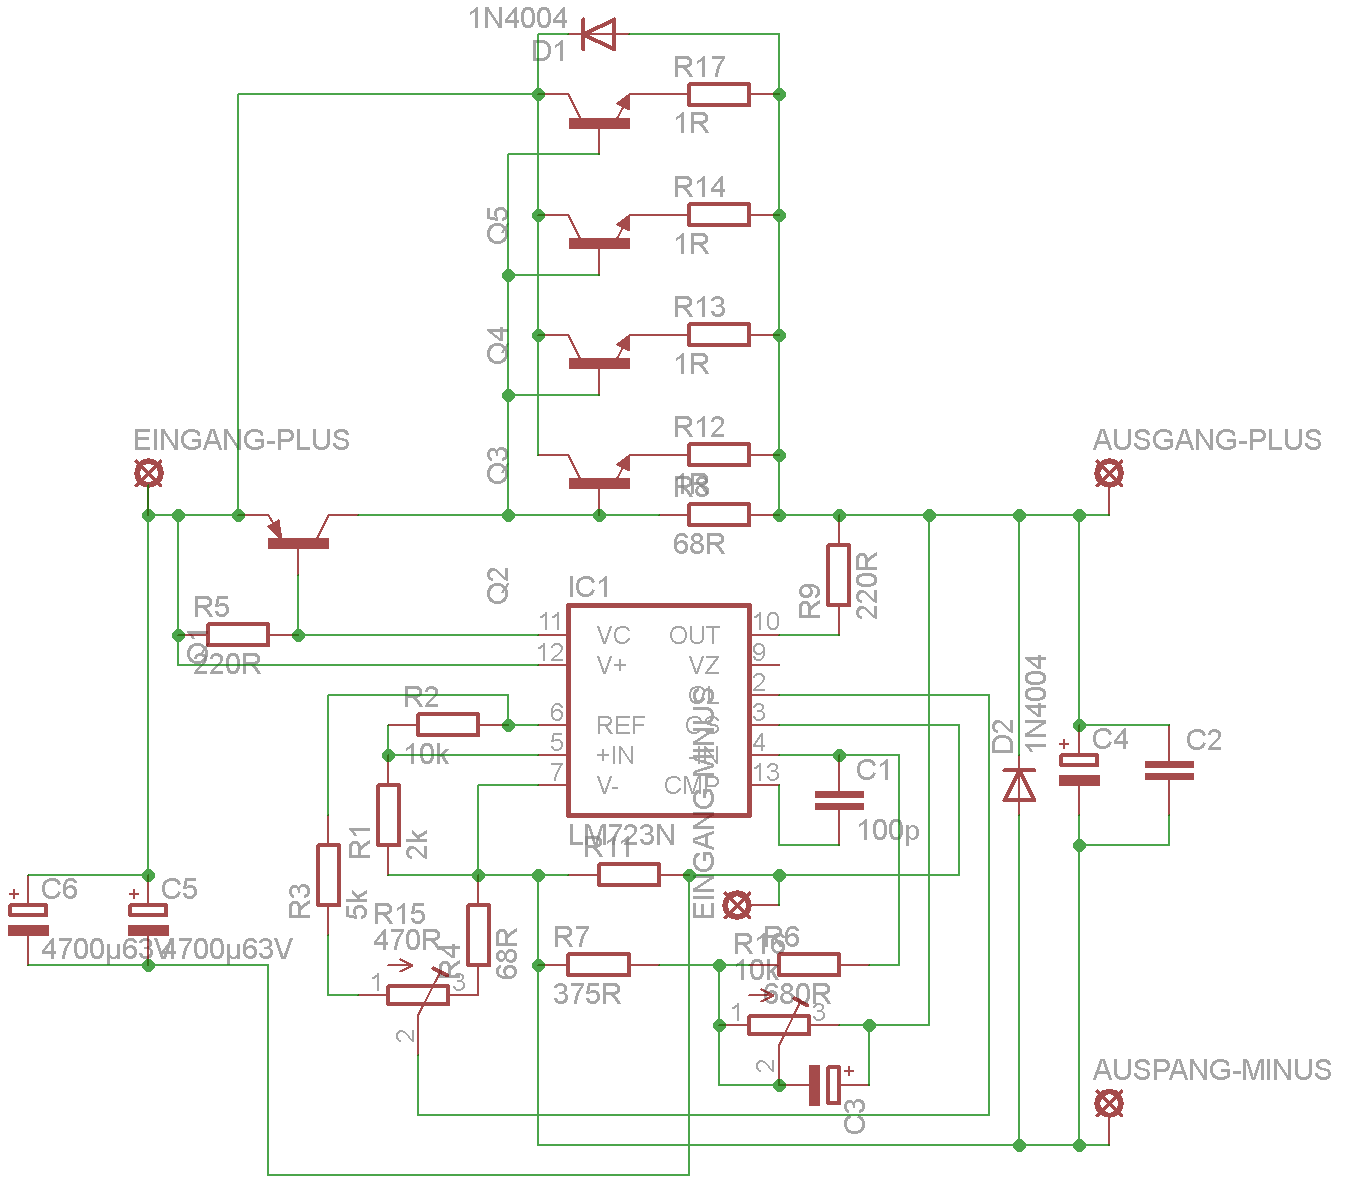 Funky Mf Multimode Filter Lm13700 Envelope Channel Audio Mixer Circuit Using Lm3900 Simple Schematic Diagram Electronic In 2019 Pinterest Filters En Electronics